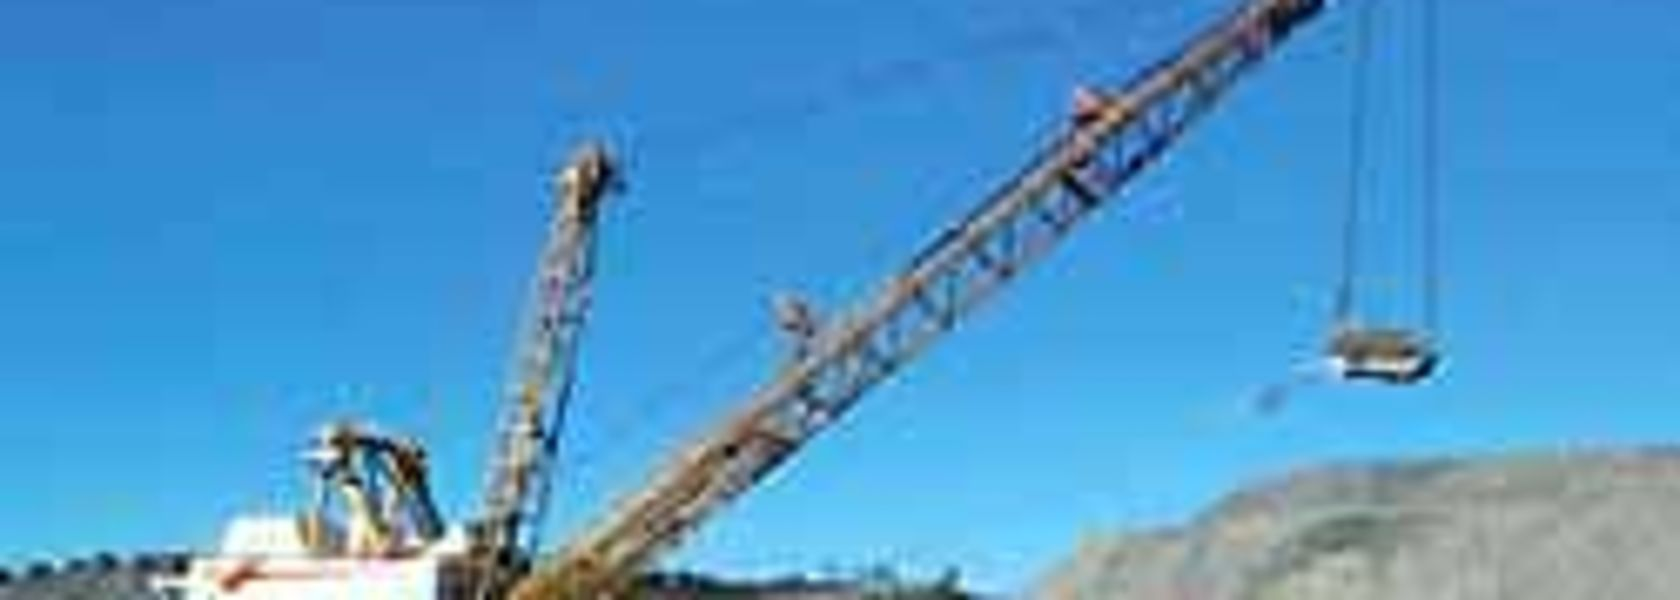 Dragline or truck shovel?